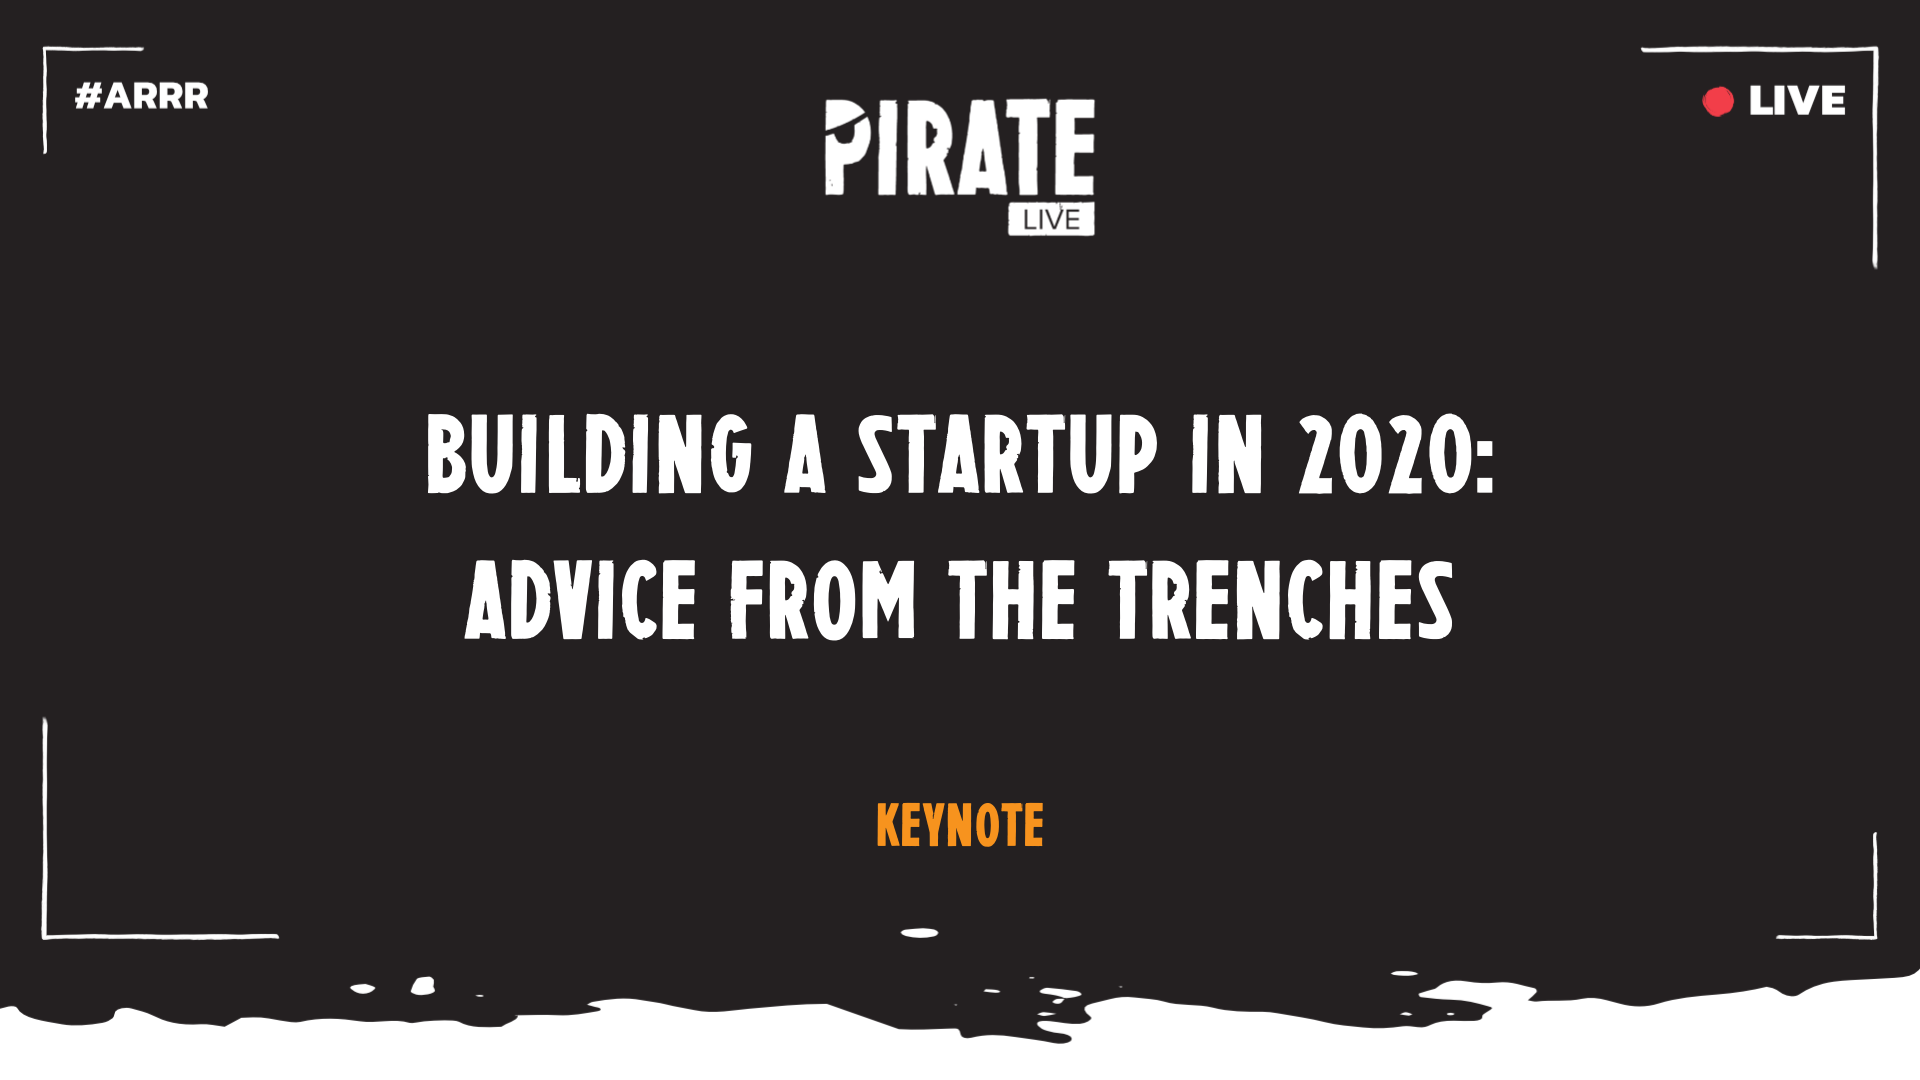 Building a startup in 2020: Advice from the trenches